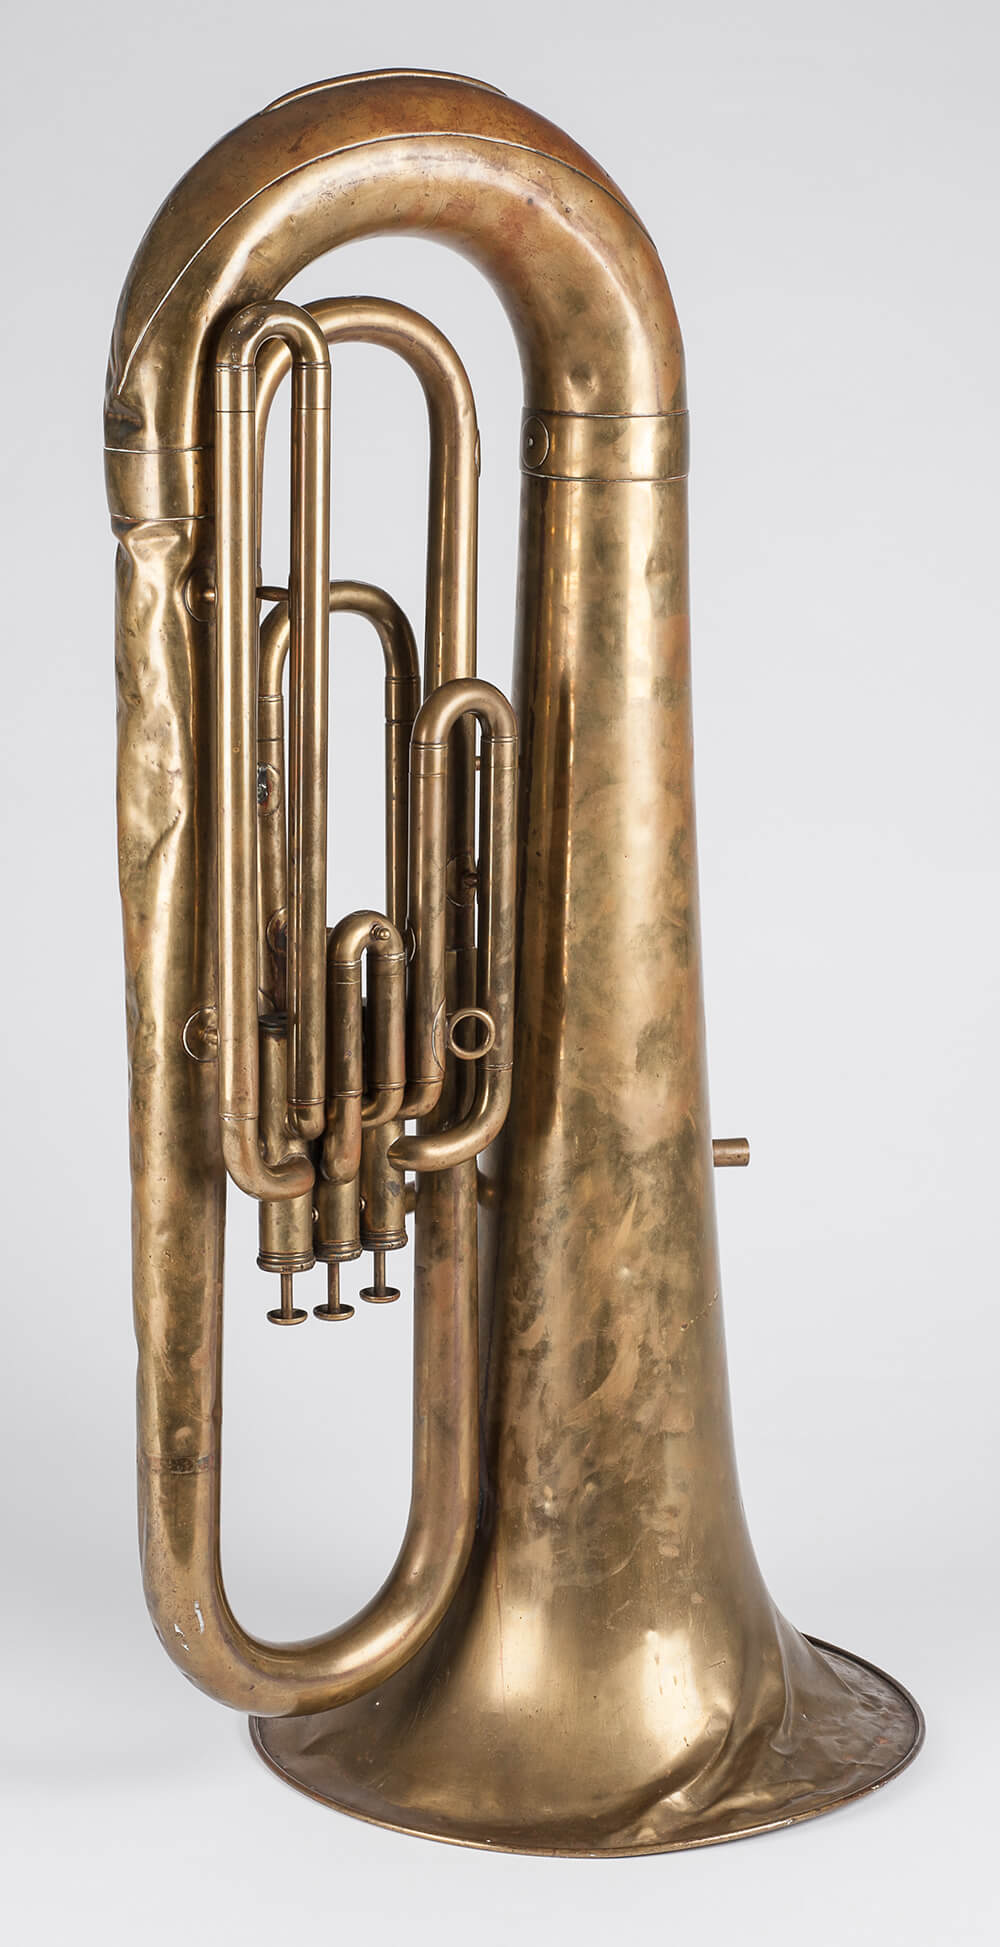 A euphorium. Mouth piece missing, silver in colour. Has three keys, with a leaf pattern on the trumpet end. ARM 90.107.